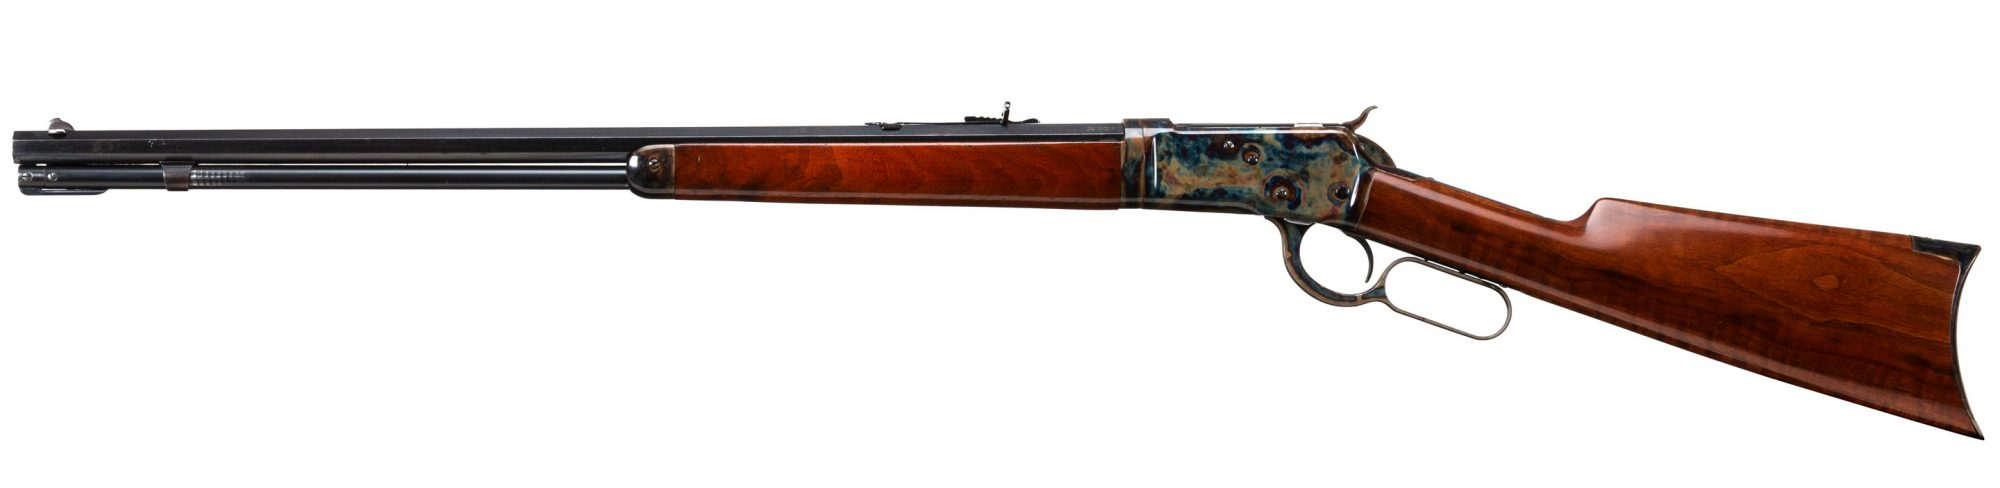 Photo of a pre-owned Winchester 1892 that has been color case hardened by Turnbull Restoration